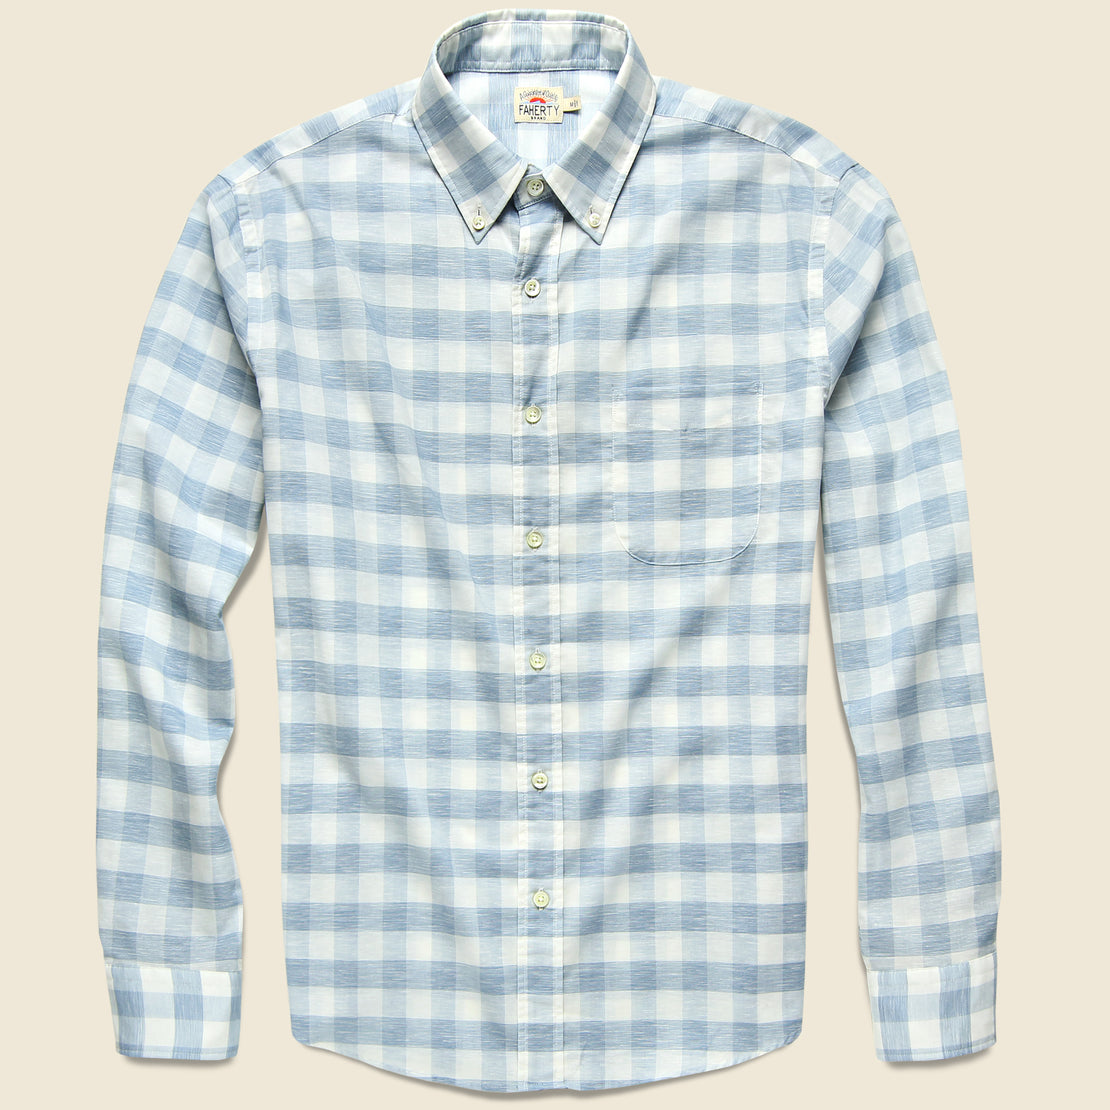 Faherty Stretch Summer Blend Shirt - White Blue Buffalo